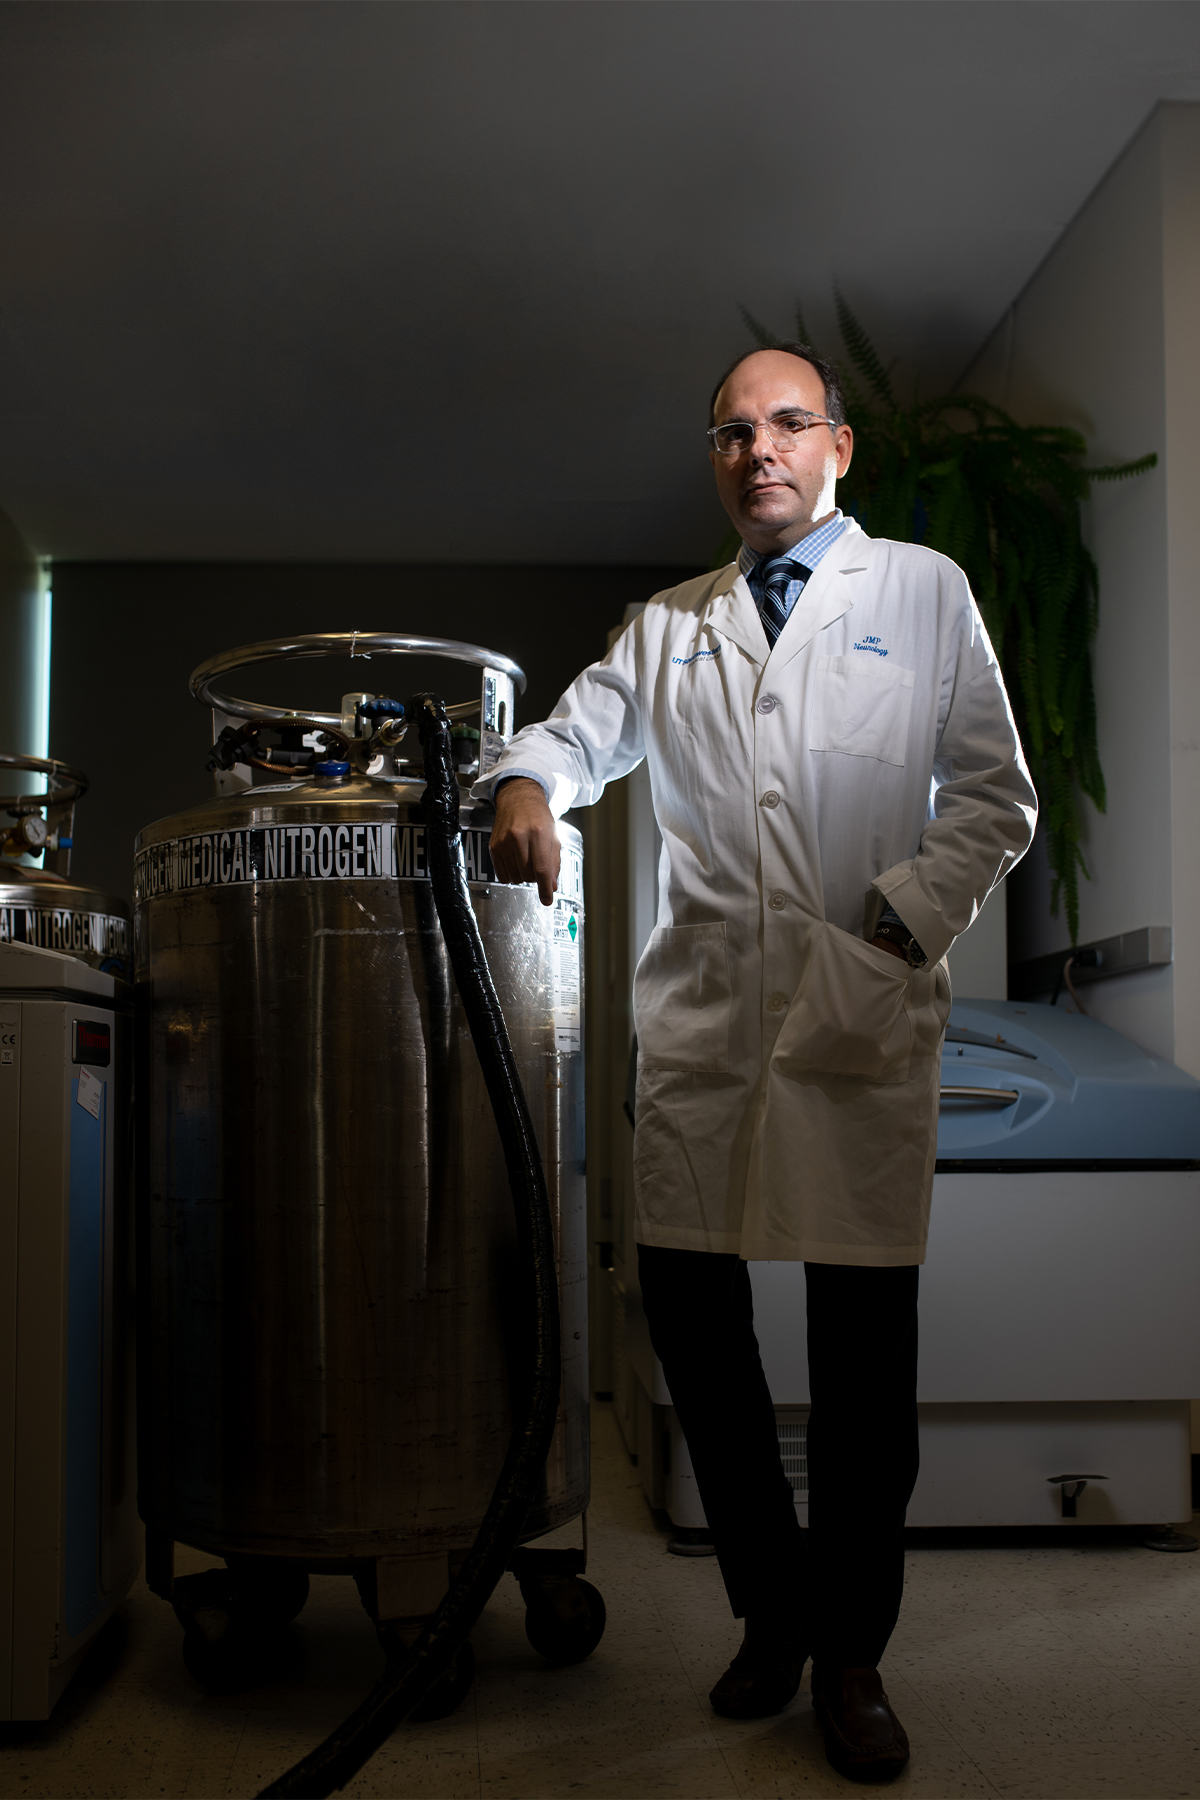 Dr. Pascual standing next to a nitrogen tank